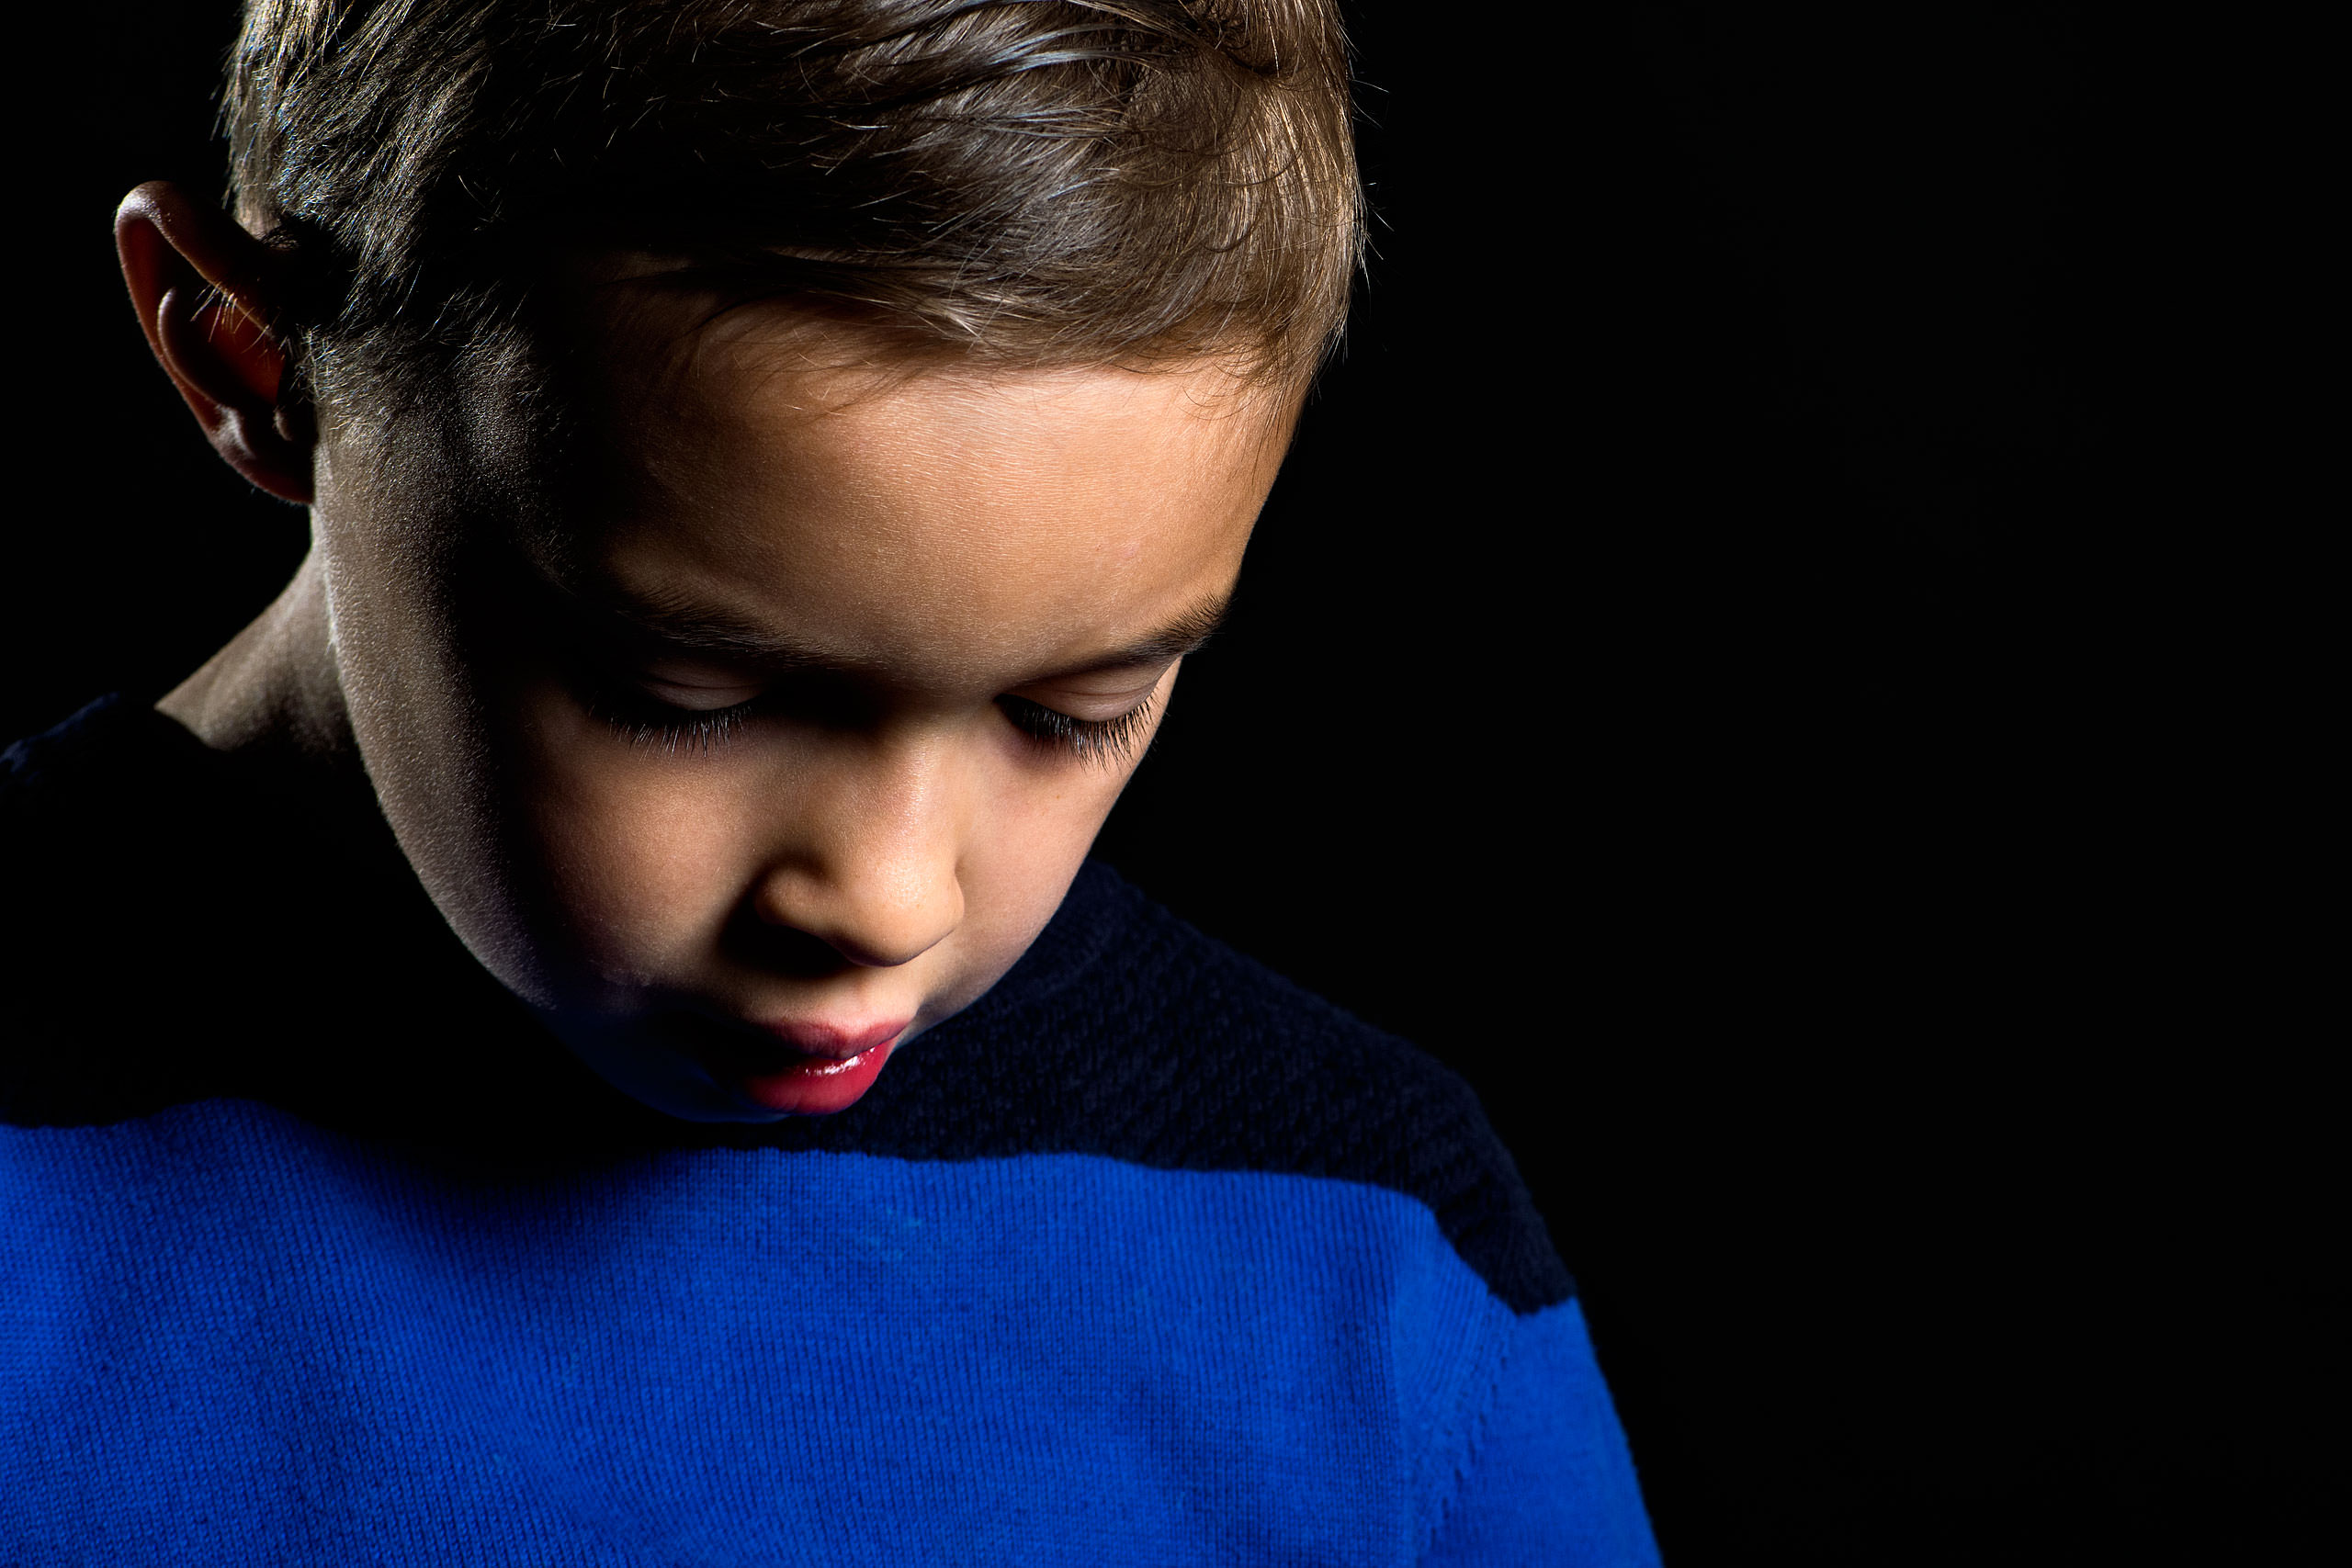 young boy looking towards the floor wearing a blue sweater on a black background by top family portrait photographer sean leblanc